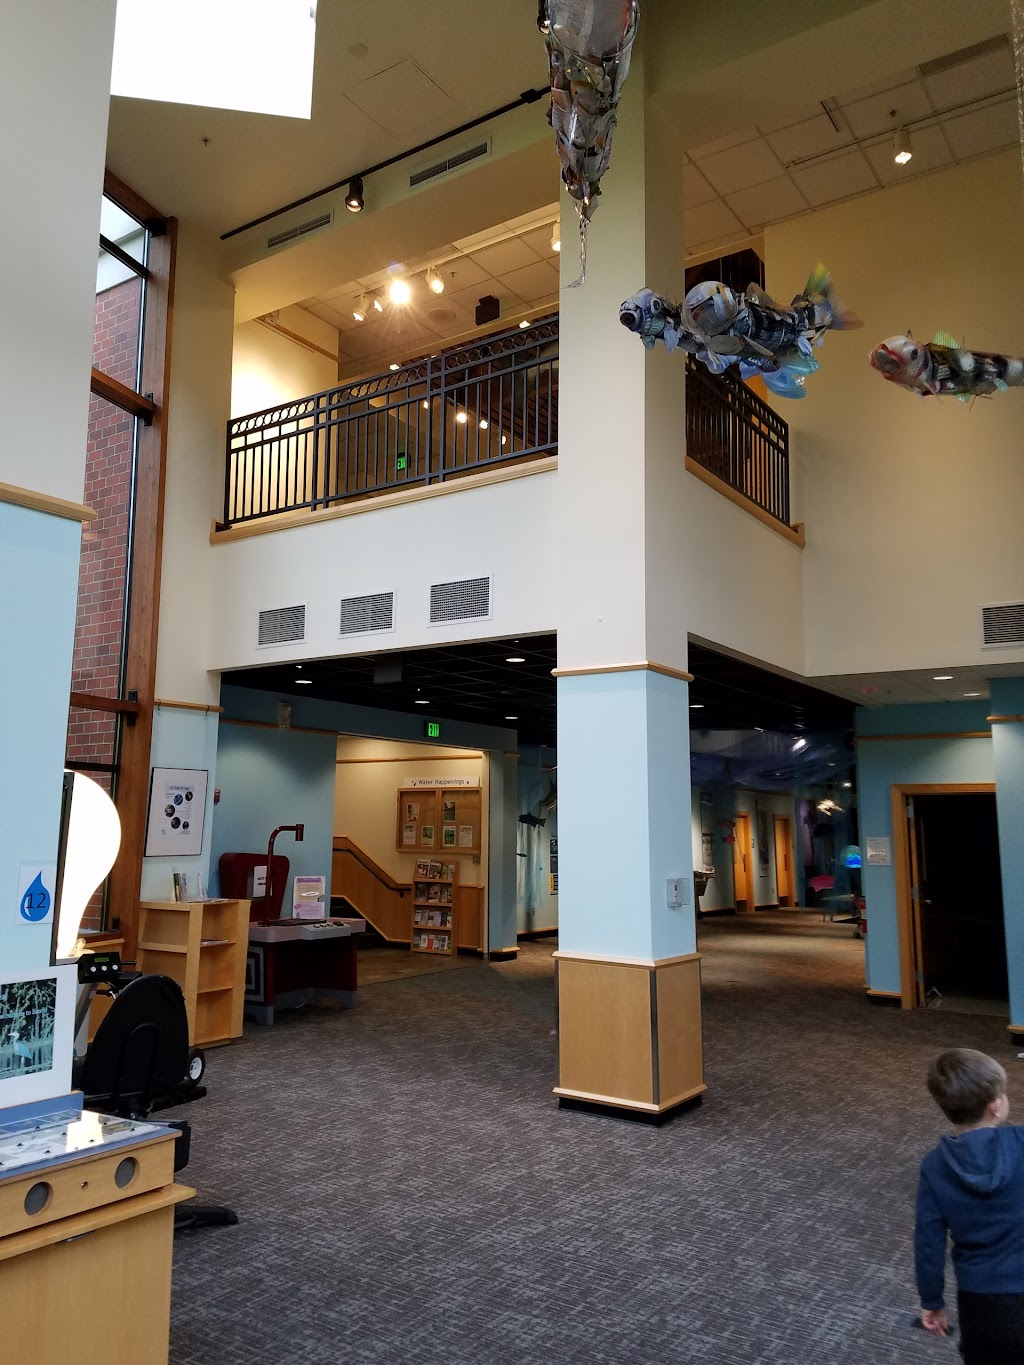 Vancouver Water Resources Center - museum    Photo 10 of 10   Address: 4600 SE Columbia Way, Vancouver, WA 98661, USA   Phone: (360) 487-7111